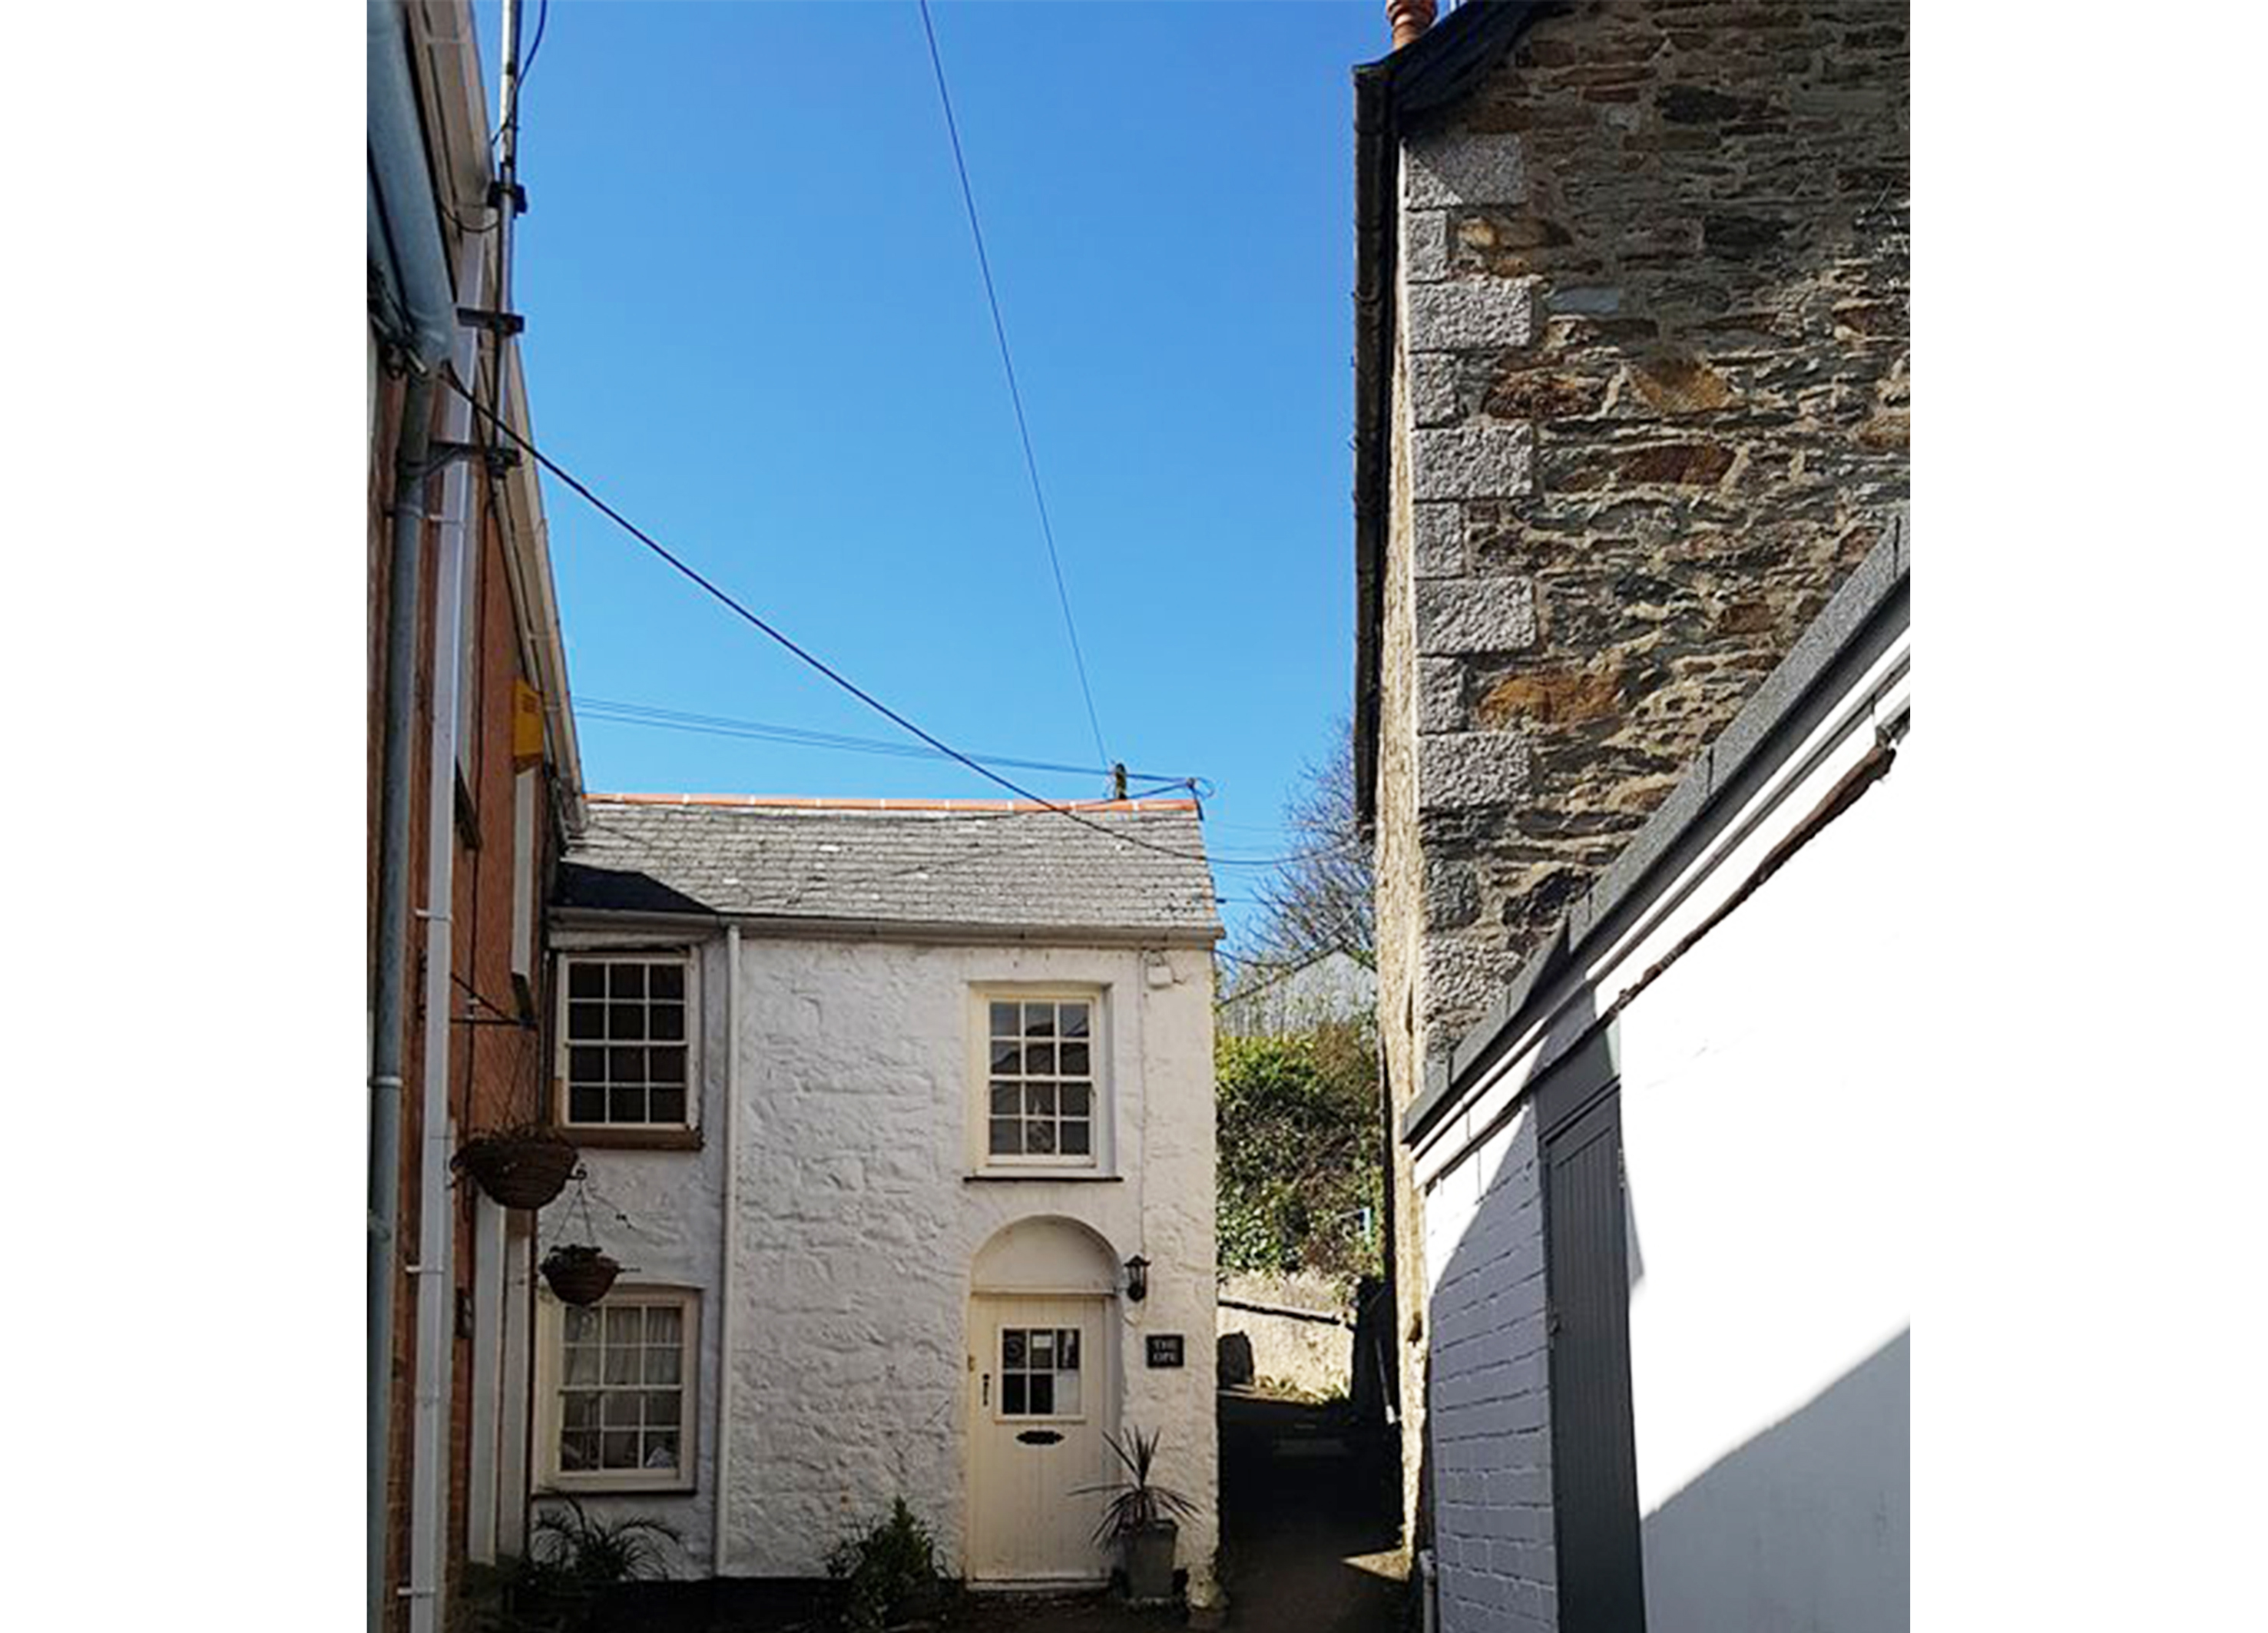 Cornish cottages in St Agnes Cornwall, alleyway